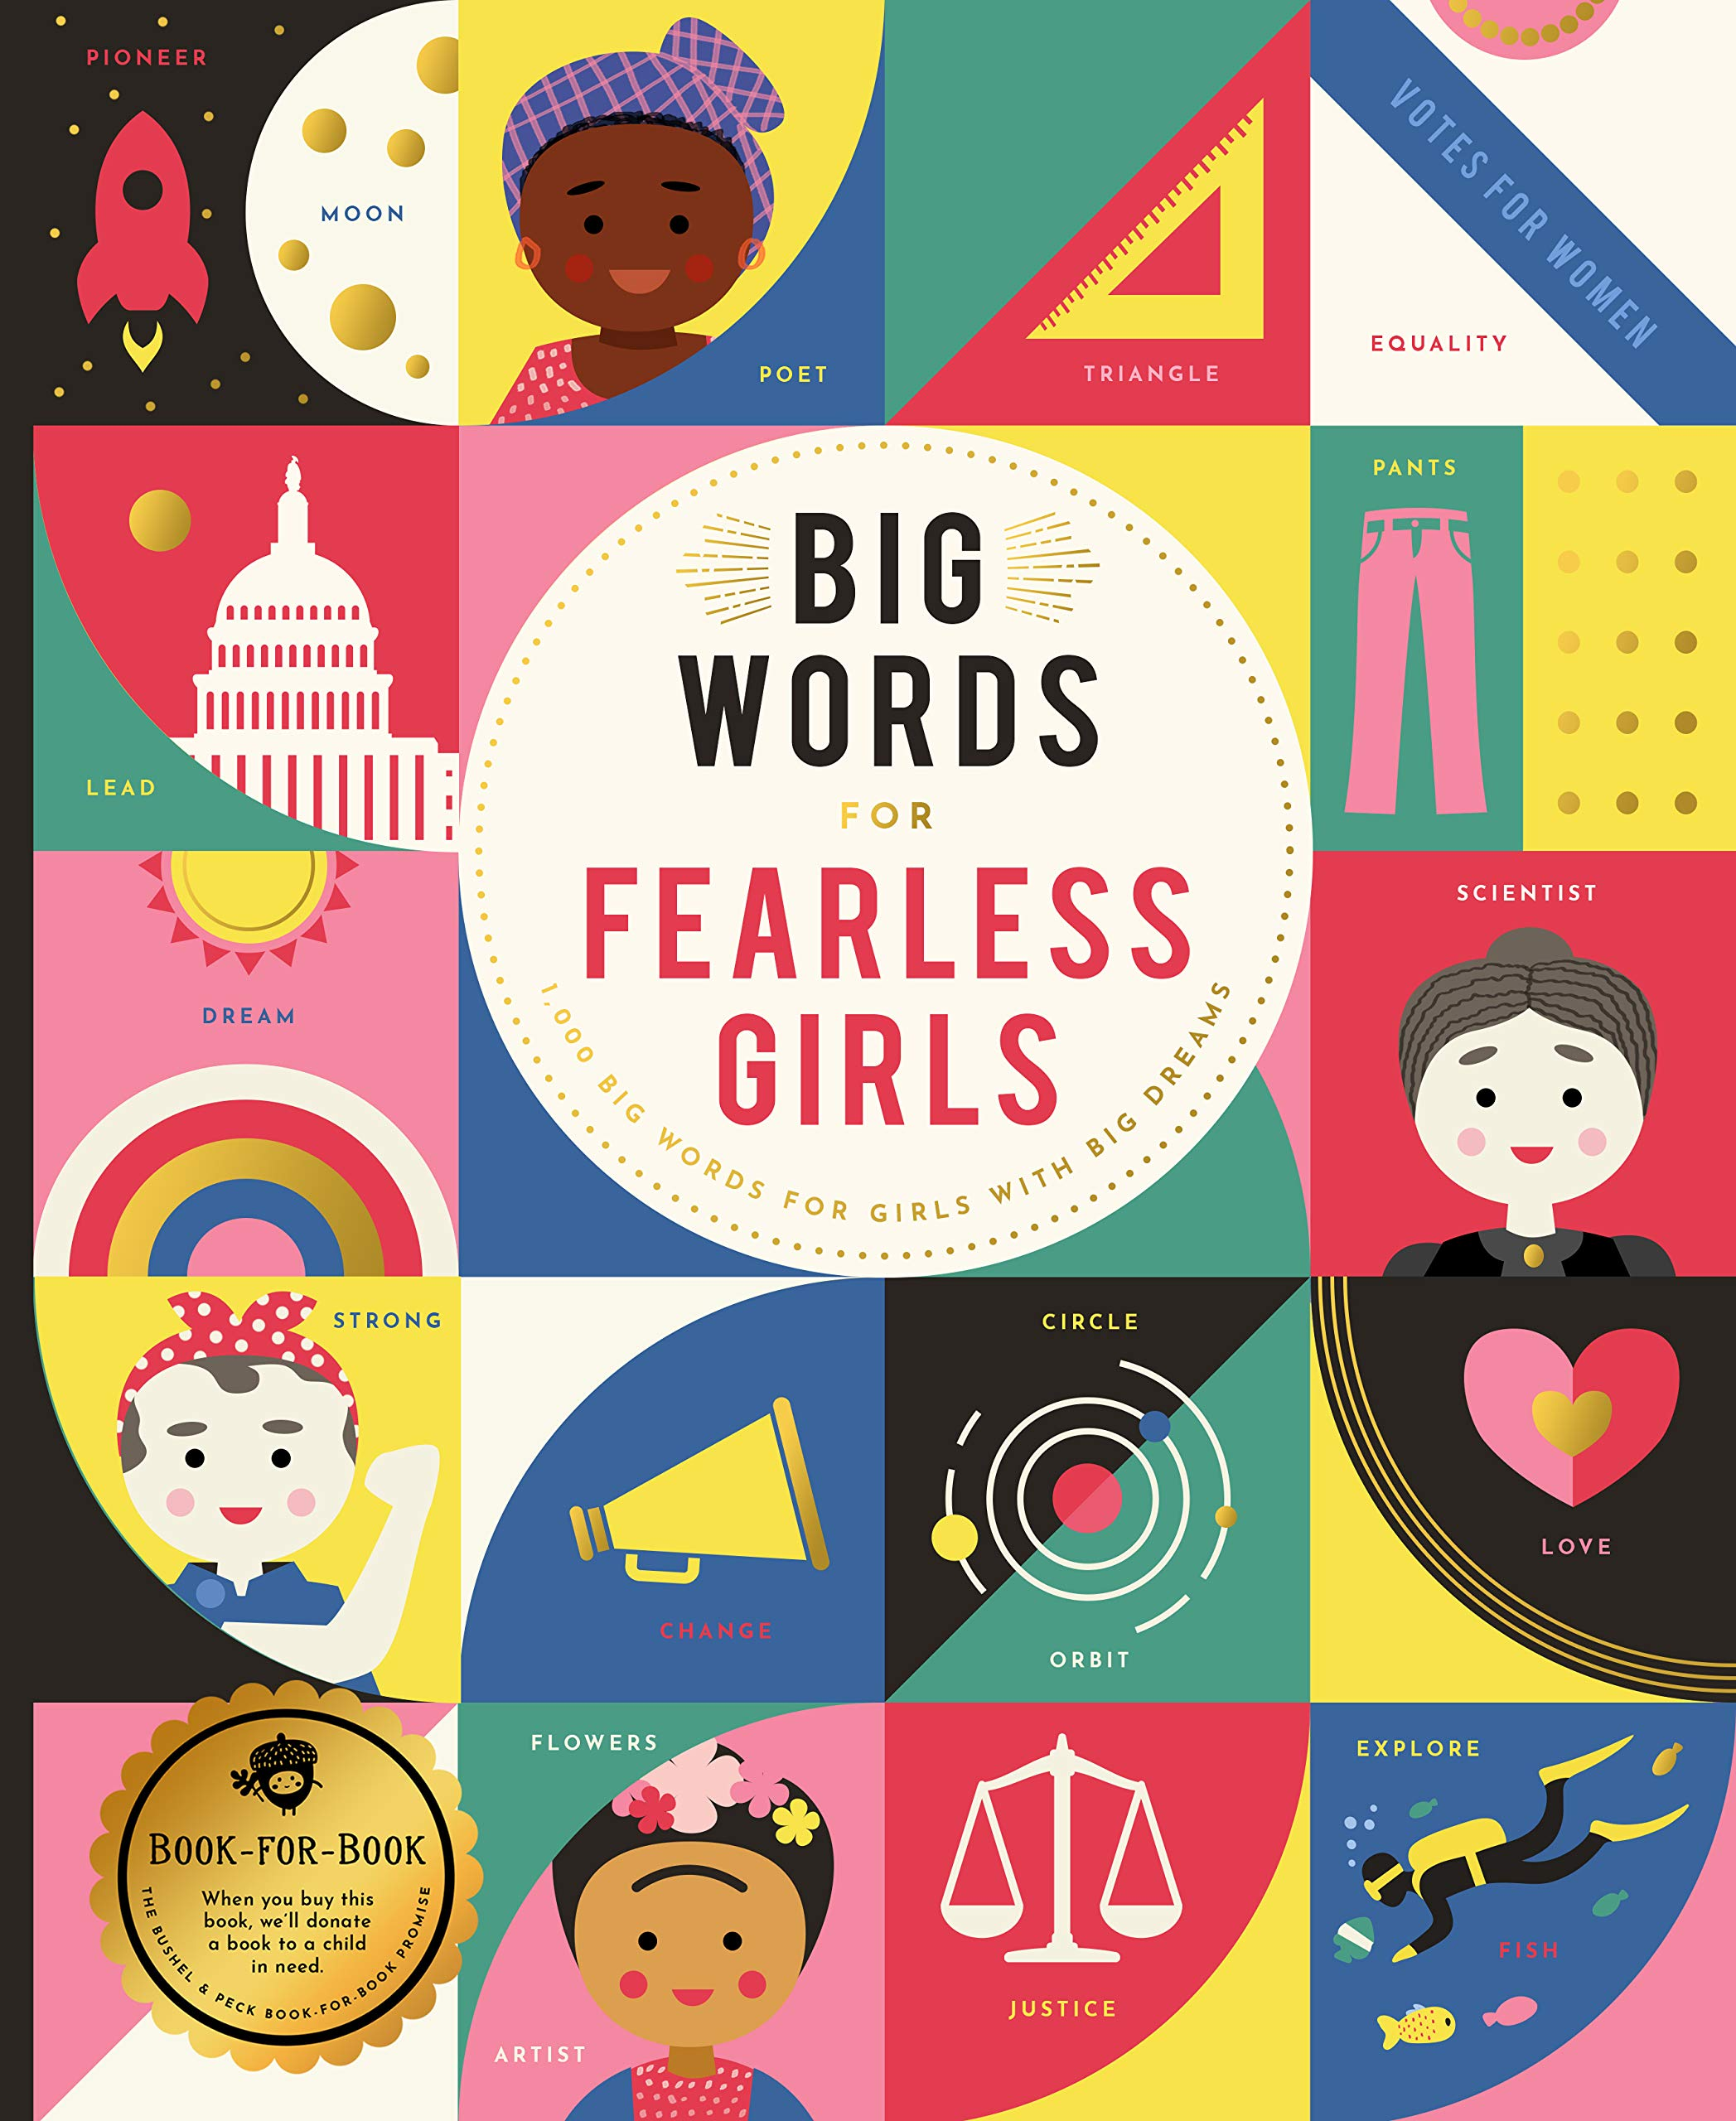 Big Words for Fearless Girls: 1, 000 Big Words for Girls